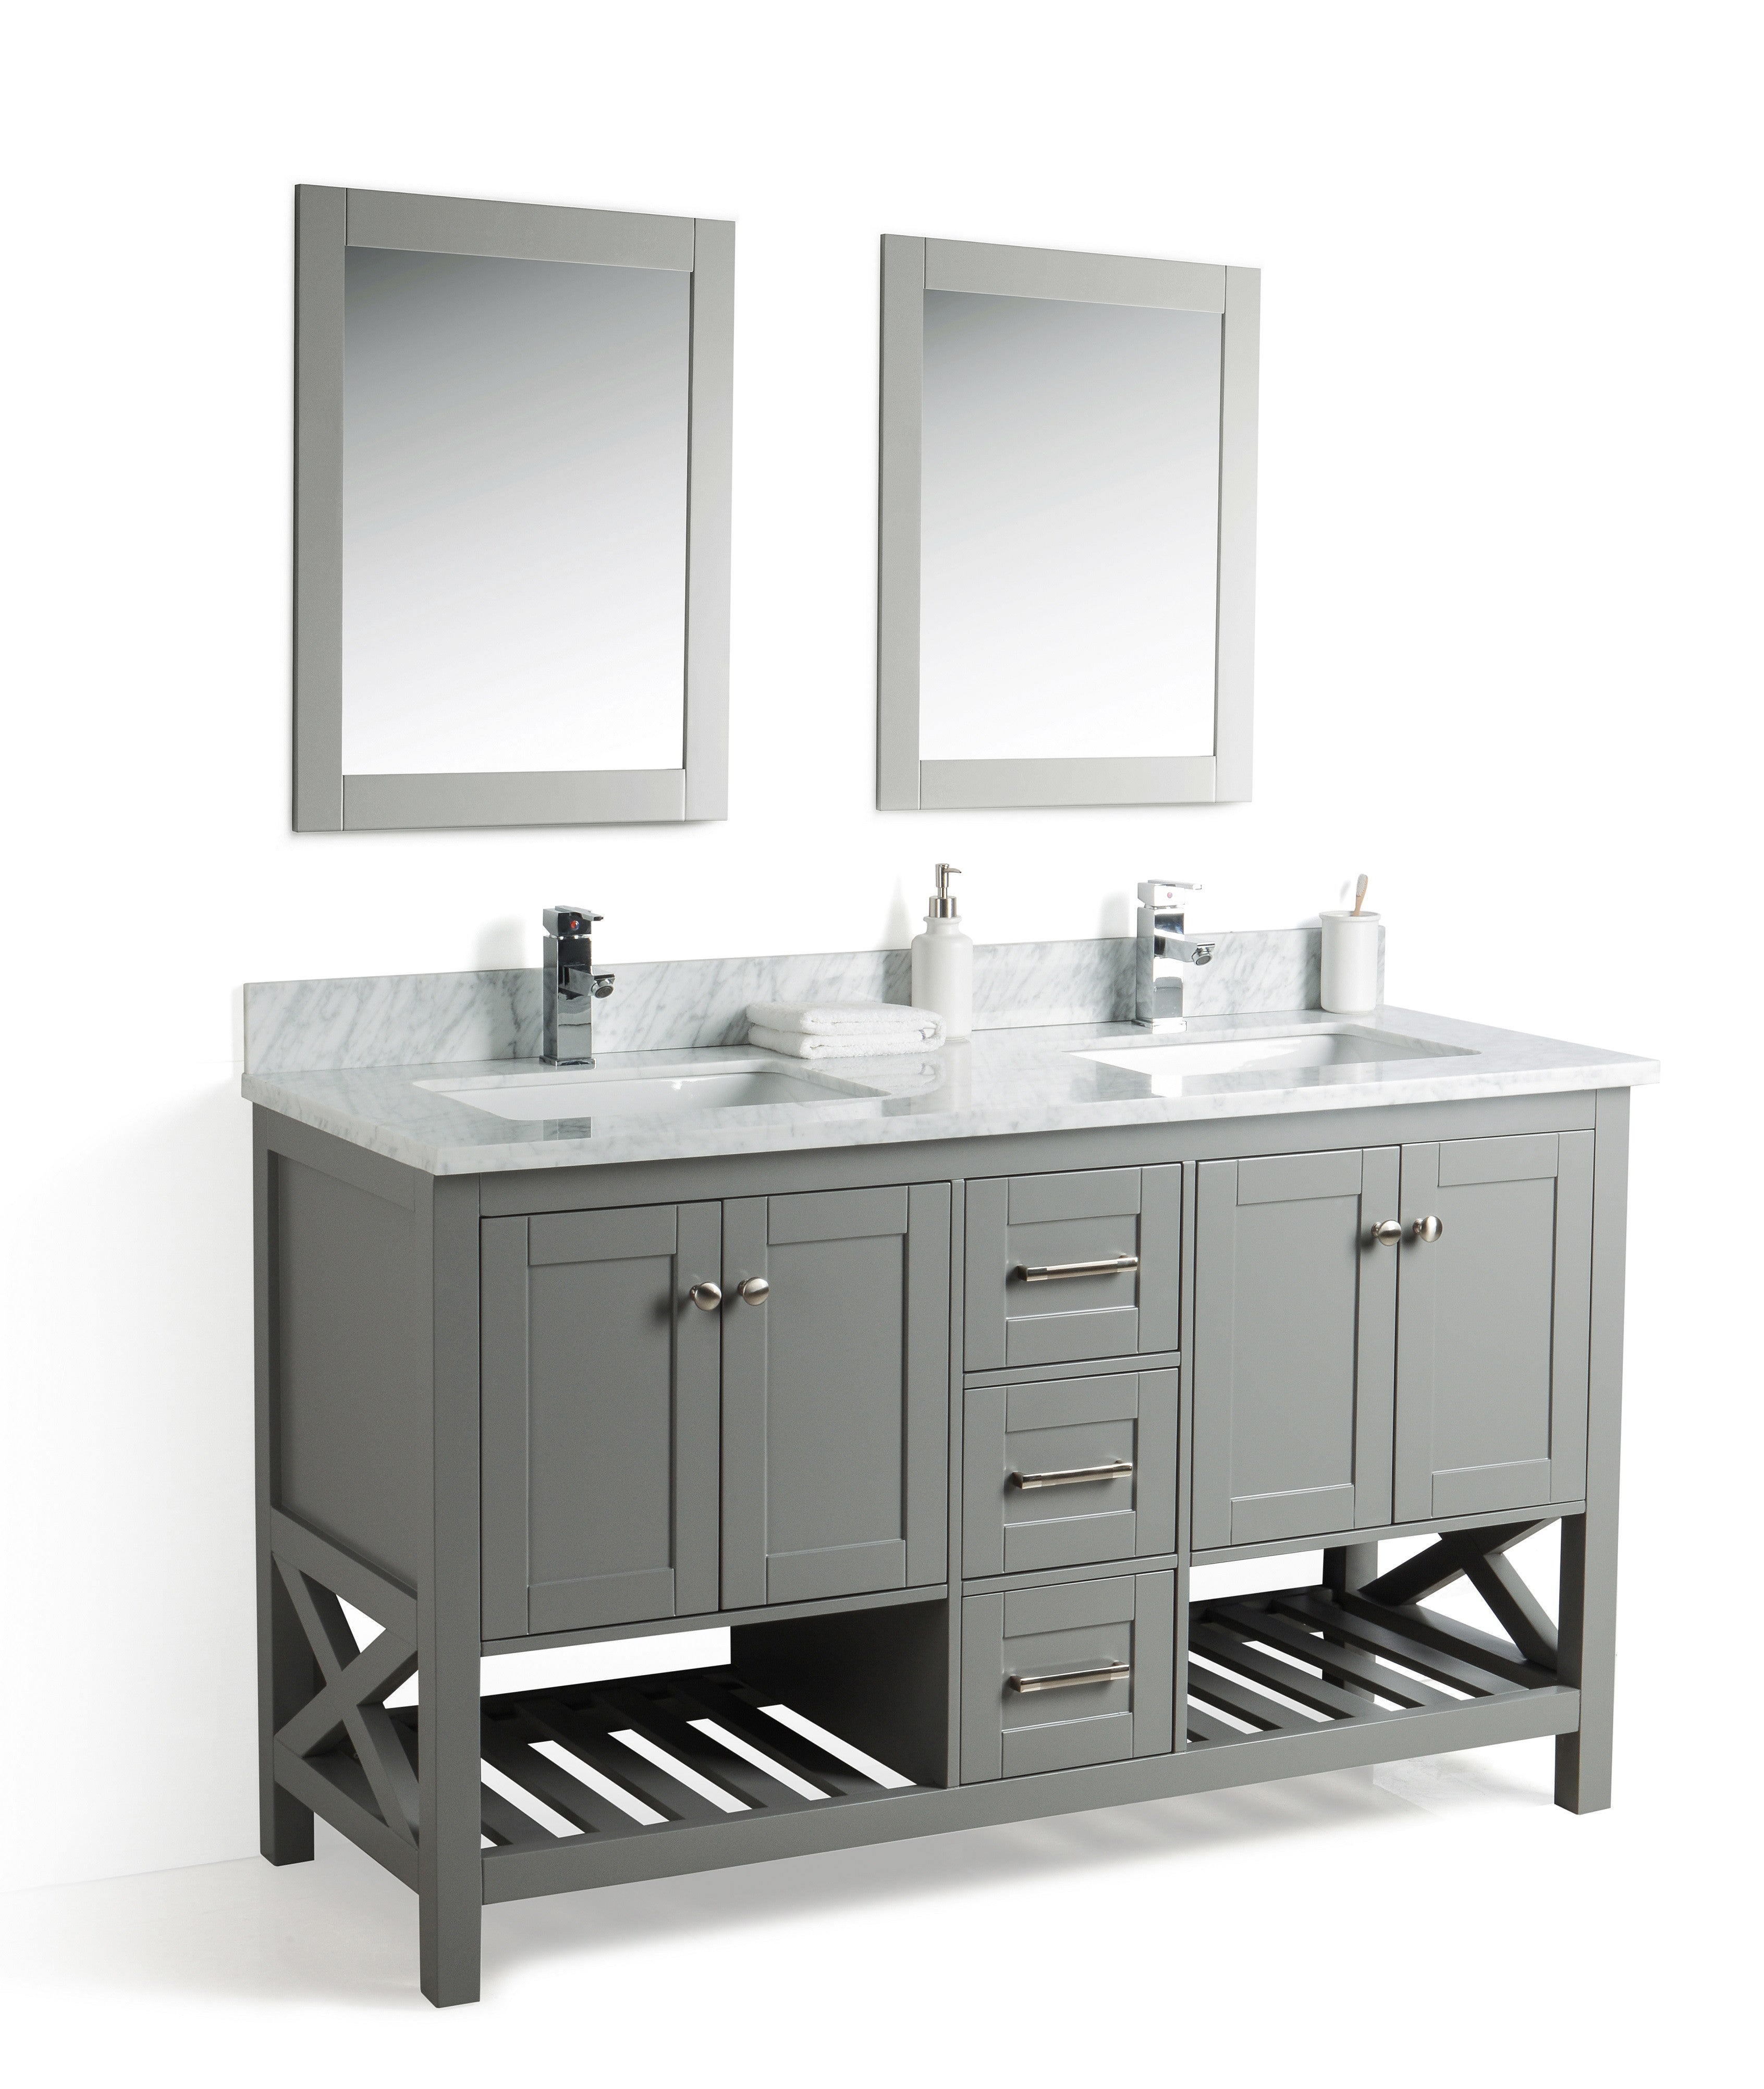 inch awesome of light espresso vanity double bathroom sink entrancing paris